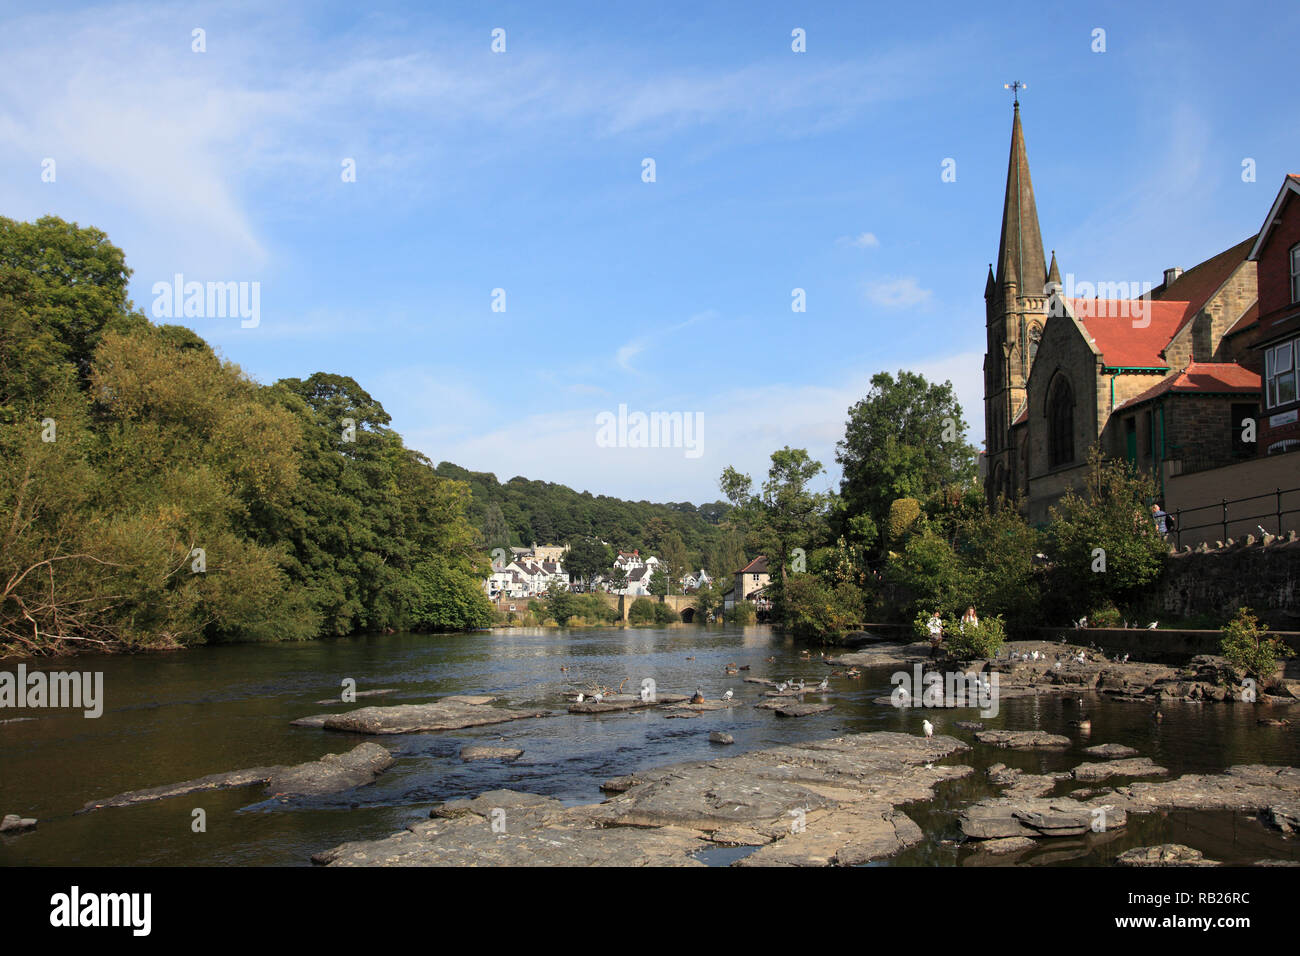 Llangollen, Dee River, Dee Valley, Denbighshire, North Wales, Wales, United Kingdom Stock Photo